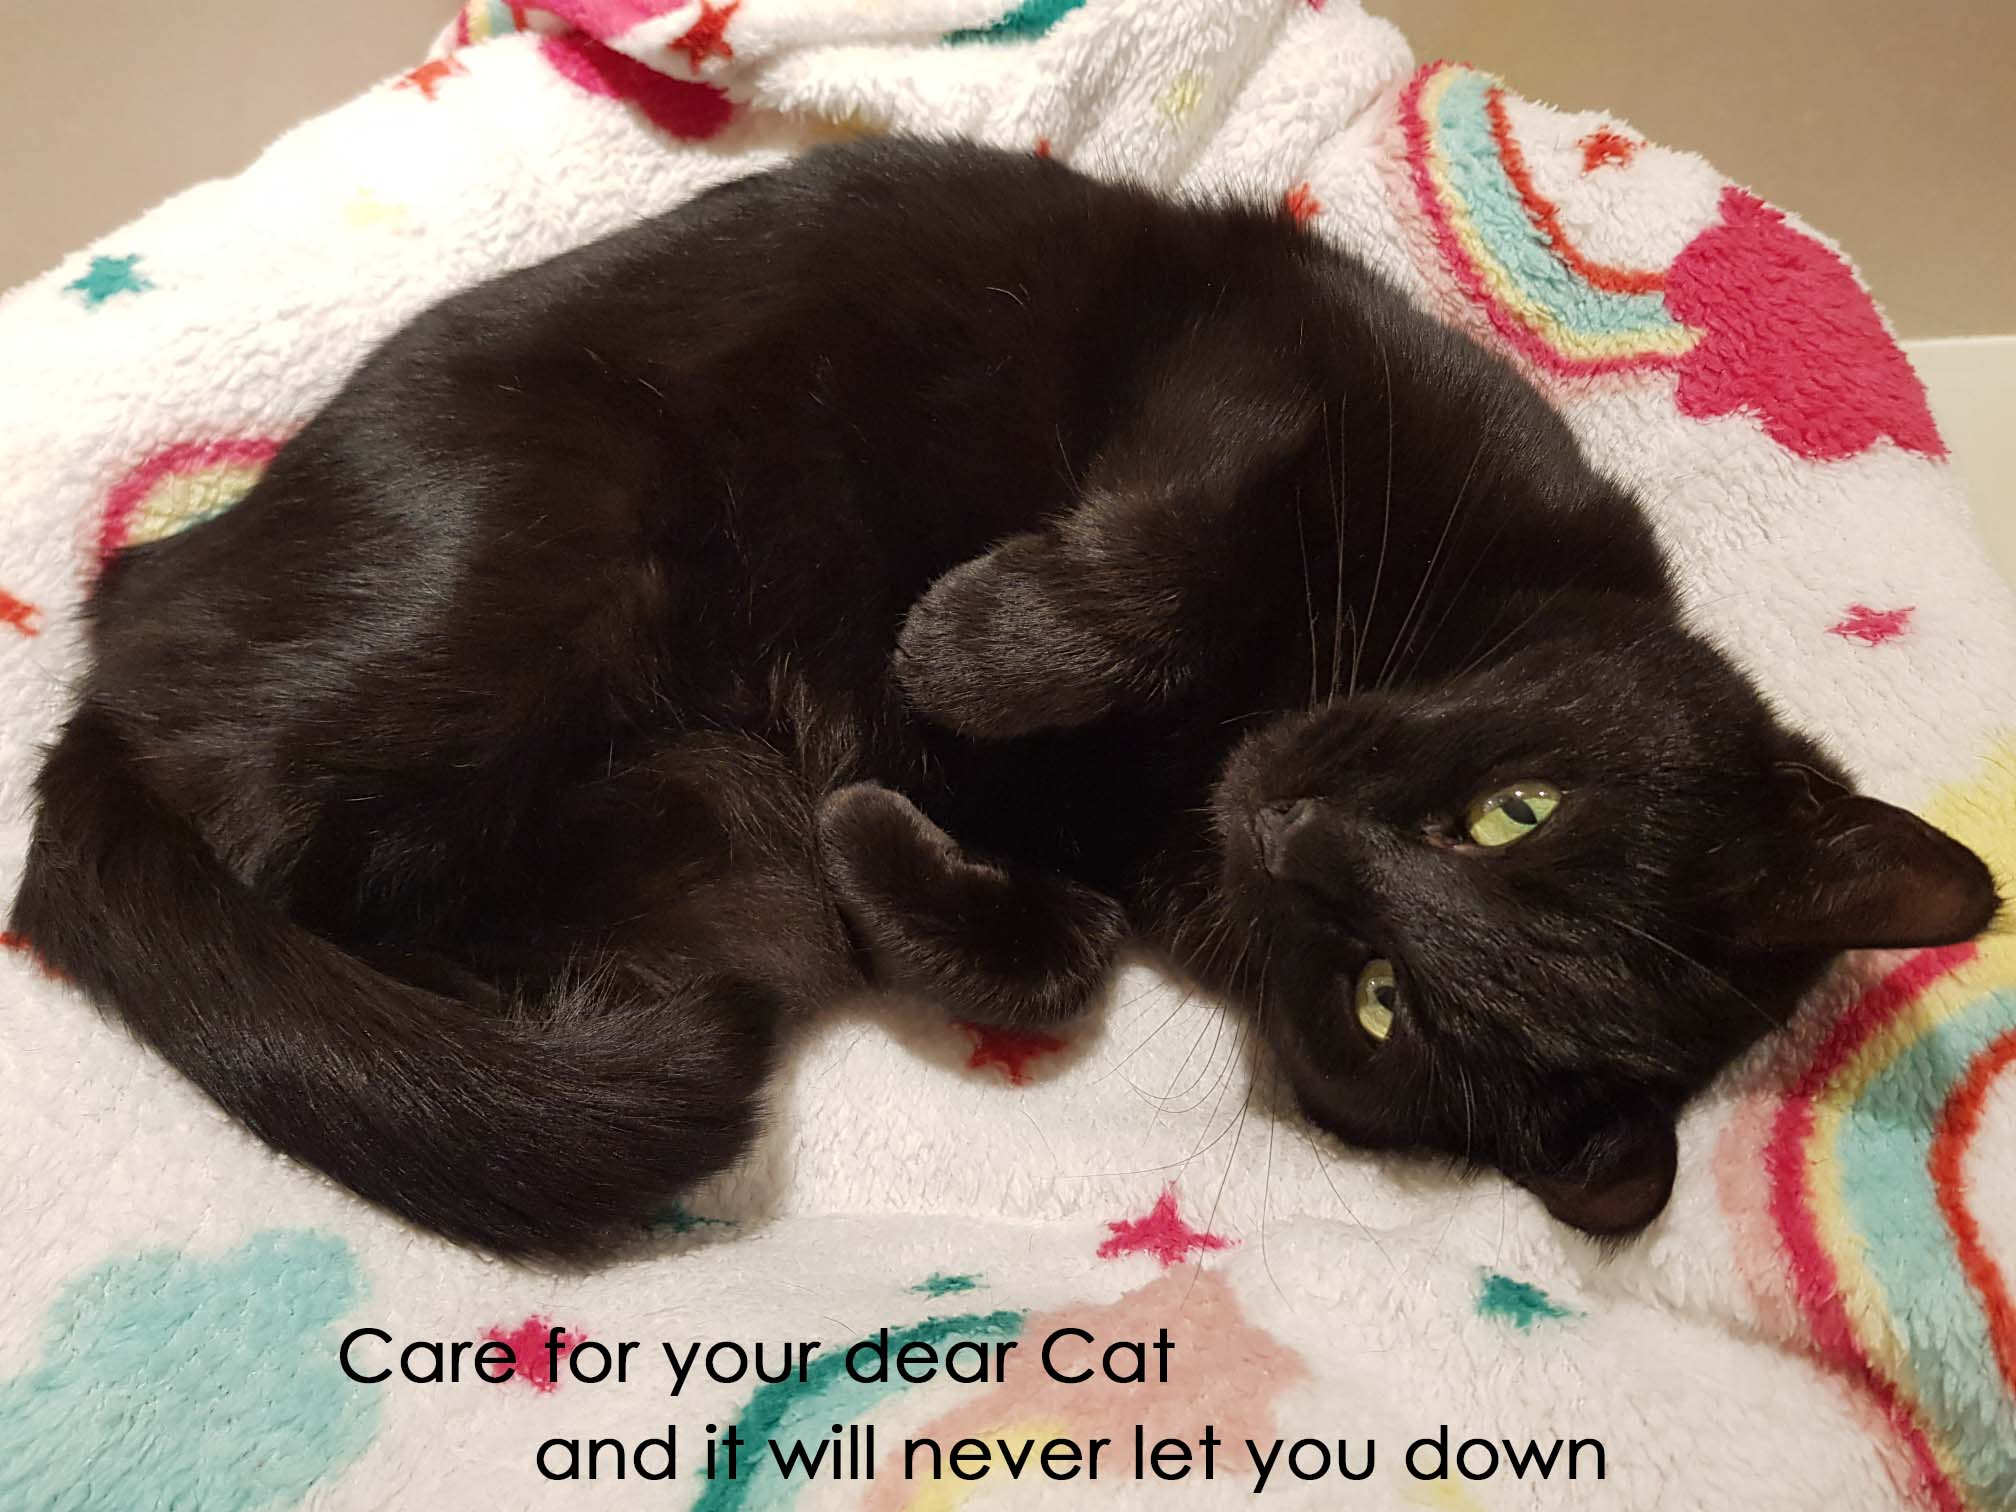 Care for your dear Cat